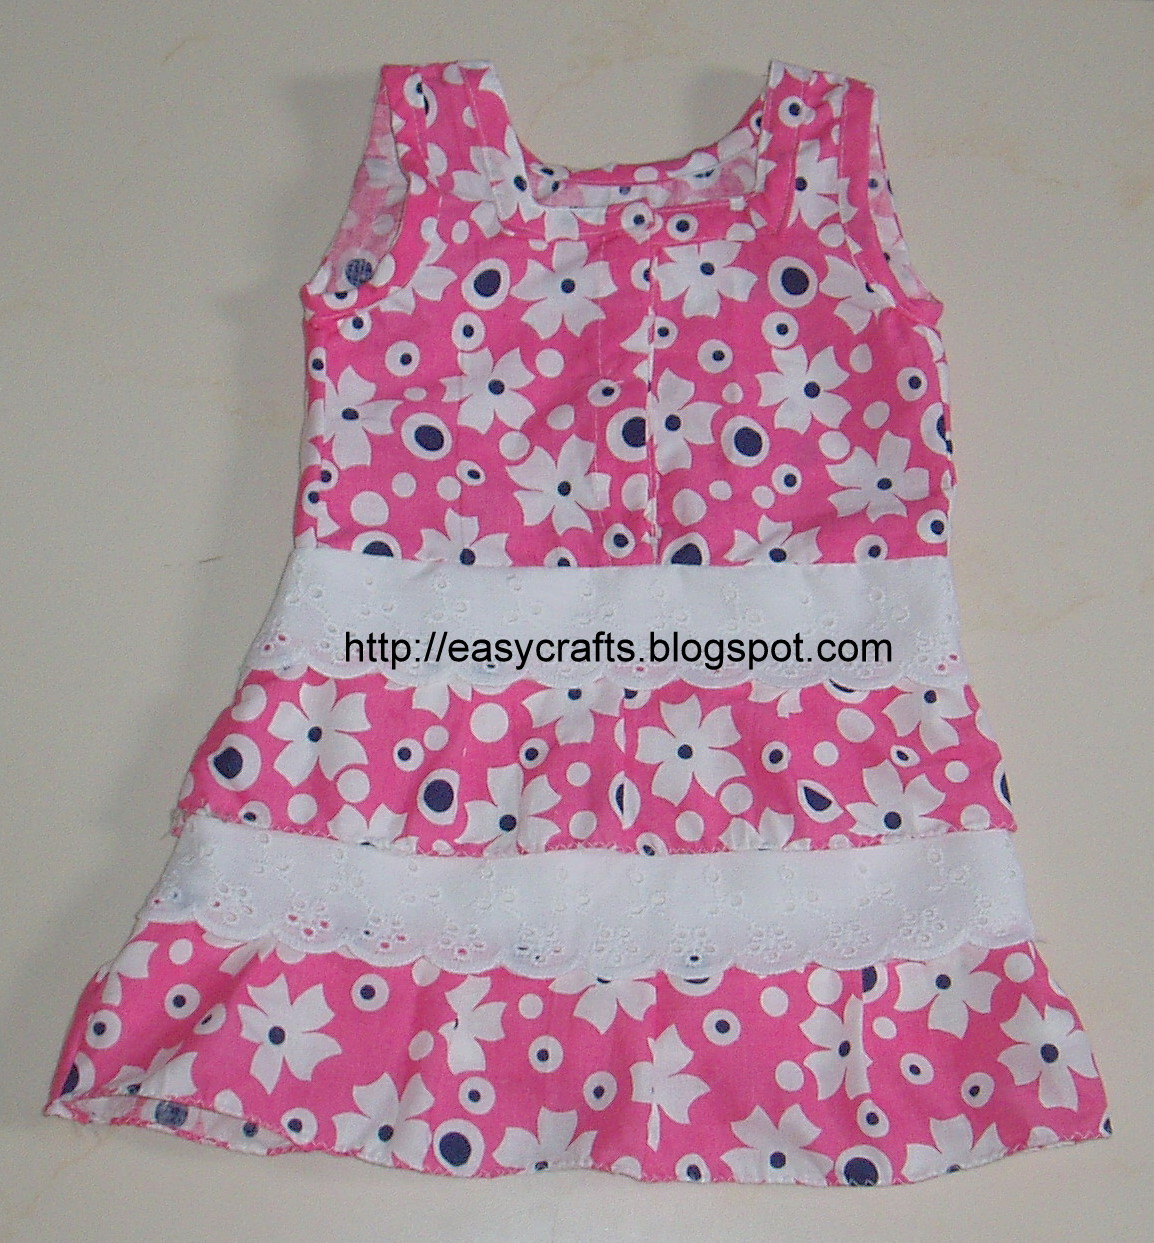 Baby Girls Frocks http://easycrafts.blogspot.com/2011/04/girl-baby-frock.html